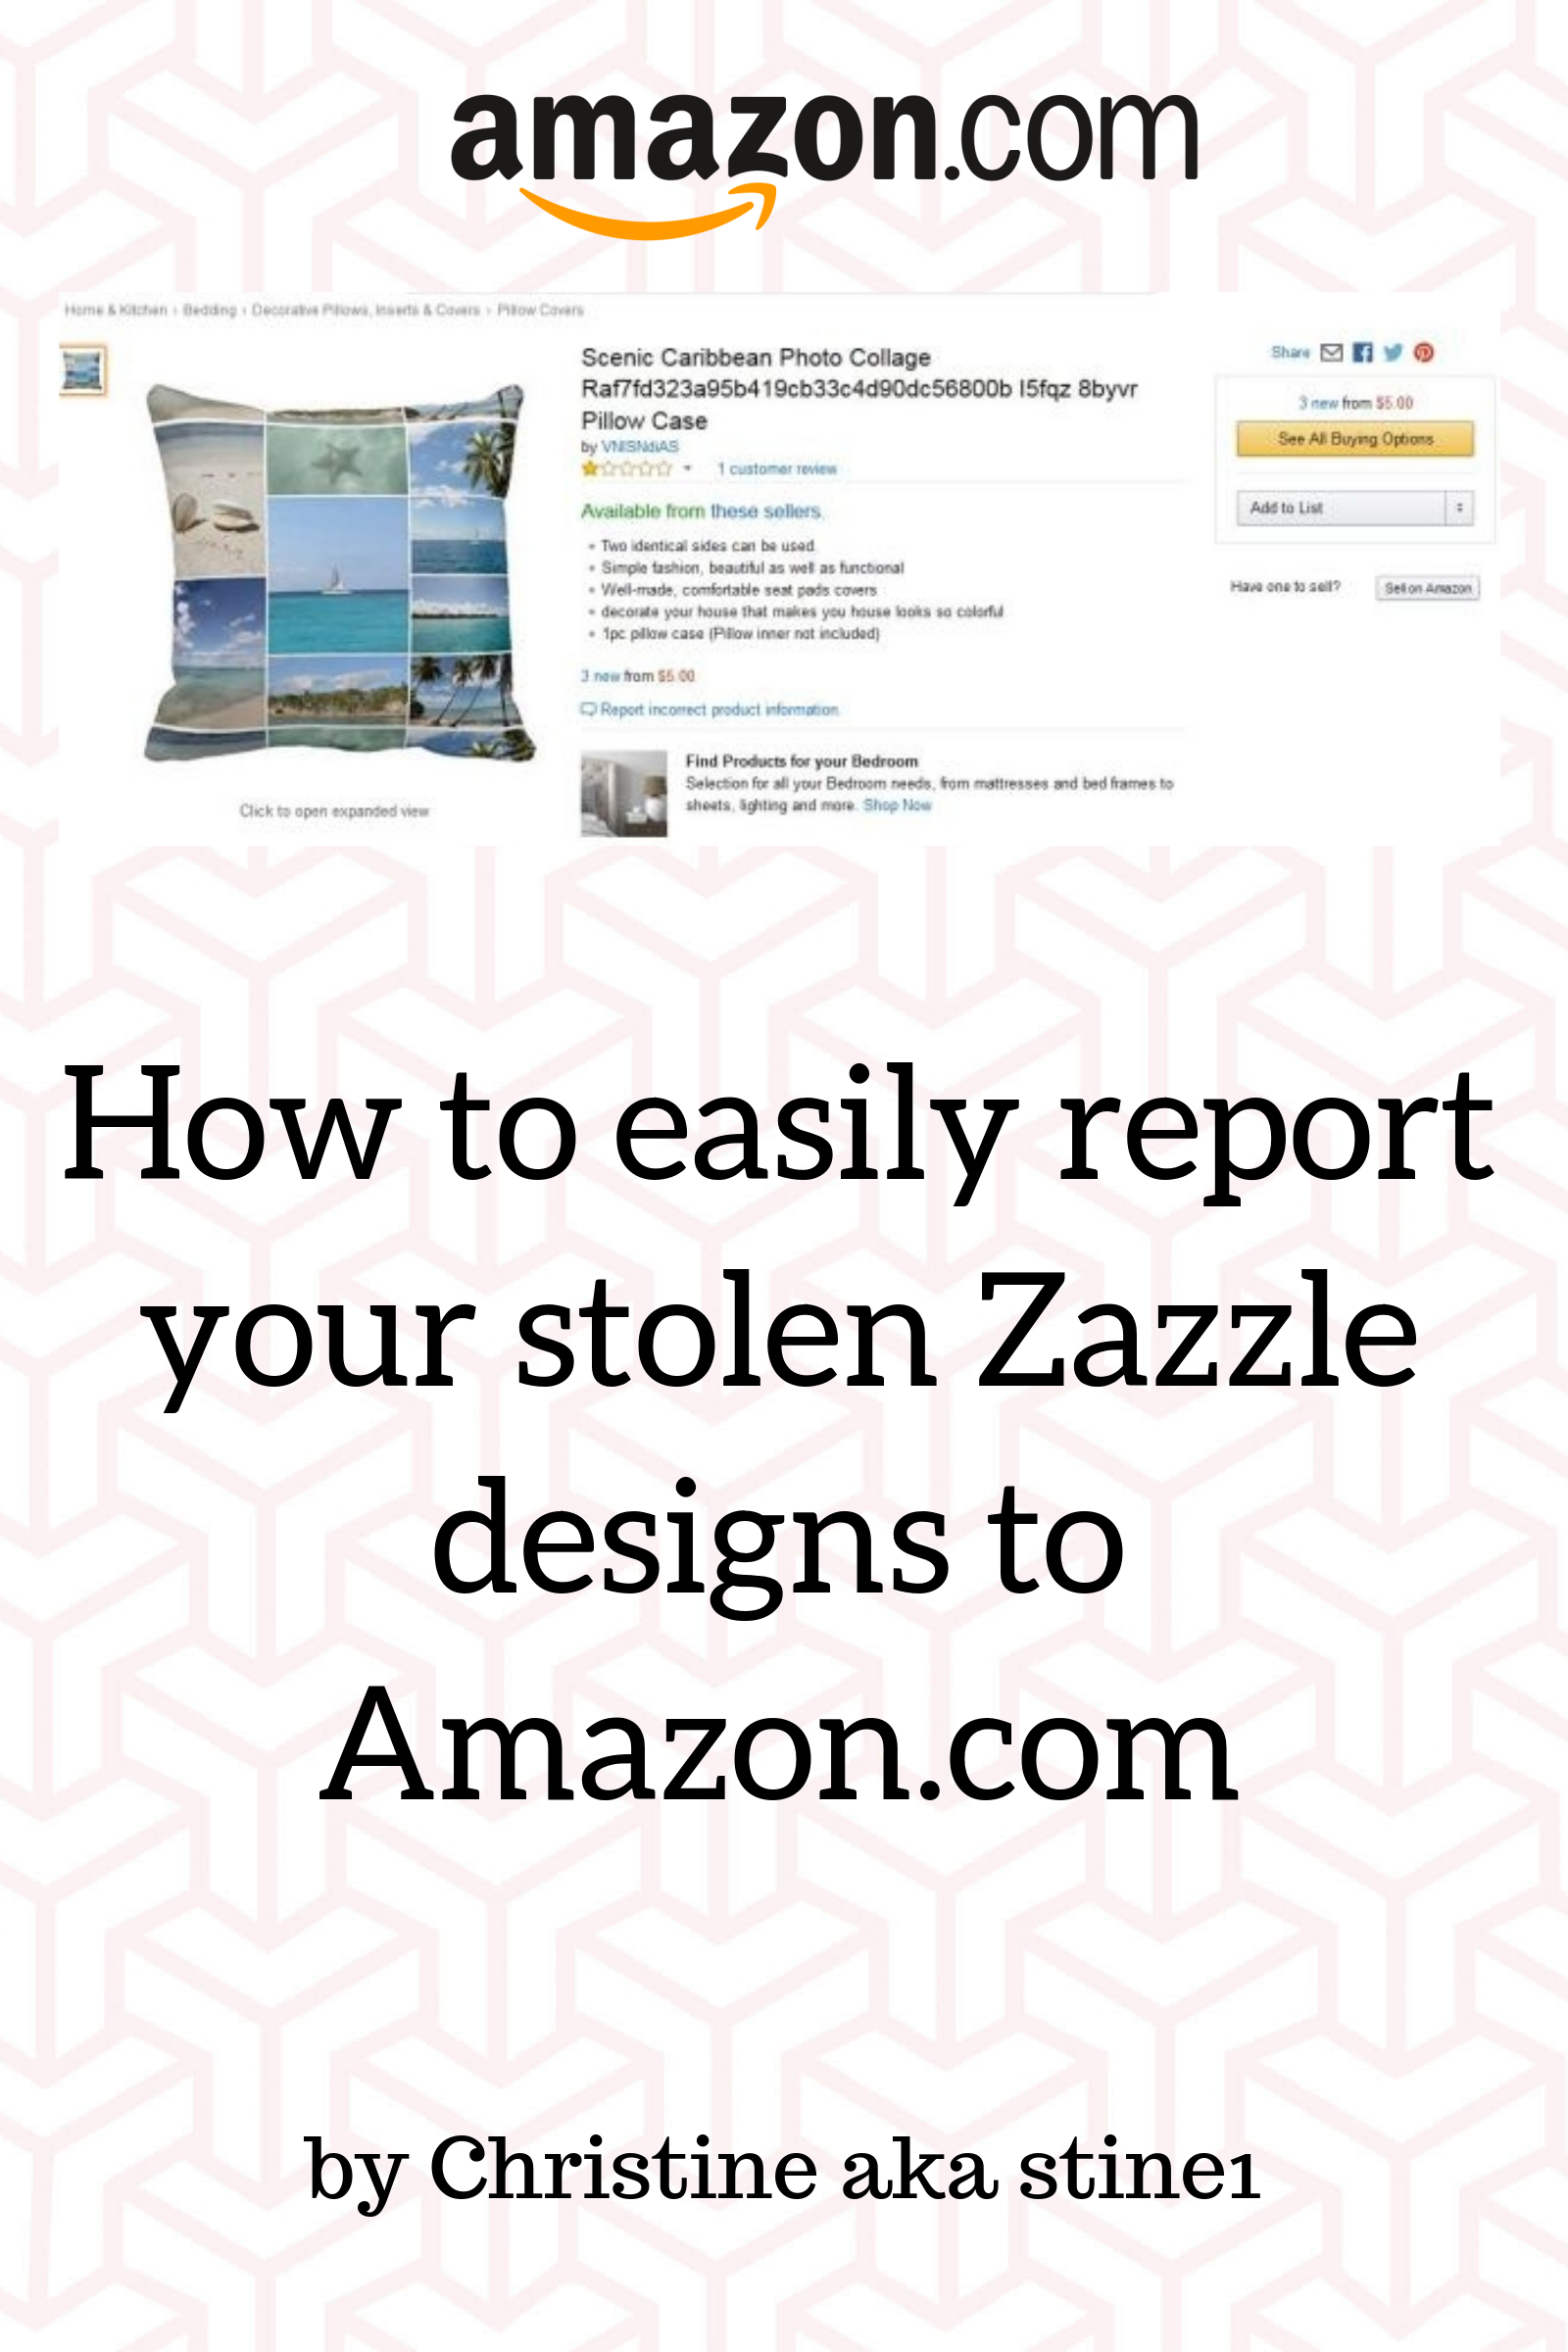 eBook: How to easily Report Your Stolen Zazzle Designs to Amazon.com by Christine aka stine1